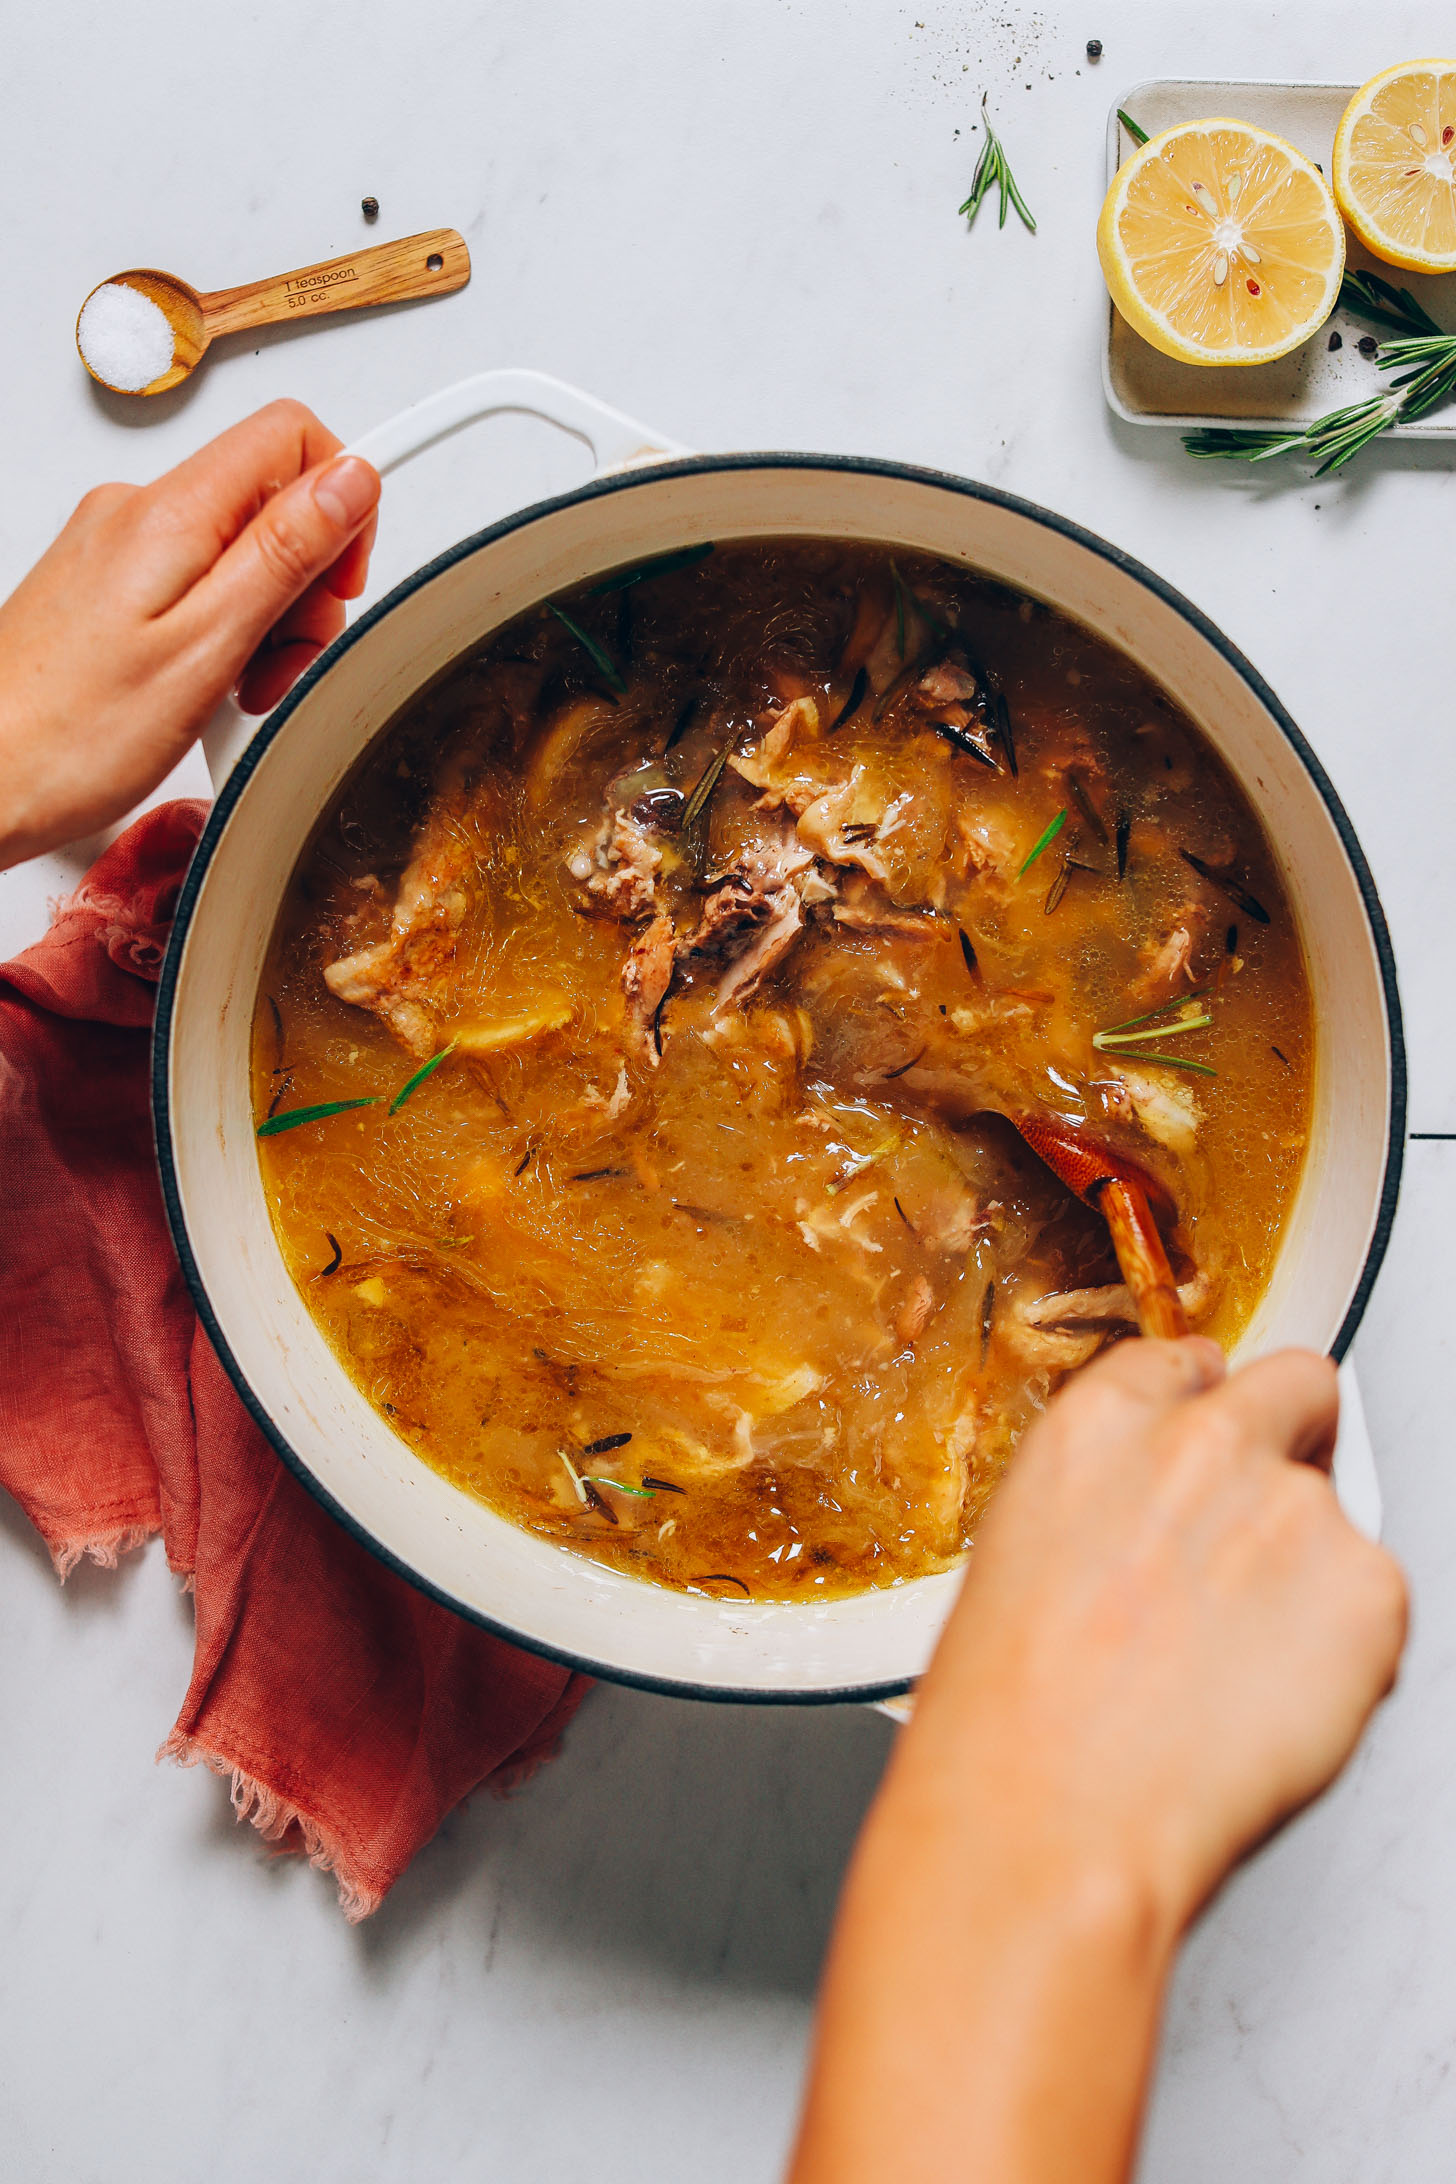 Using a wooden spoon to stir a pot of Homemade Bone Broth